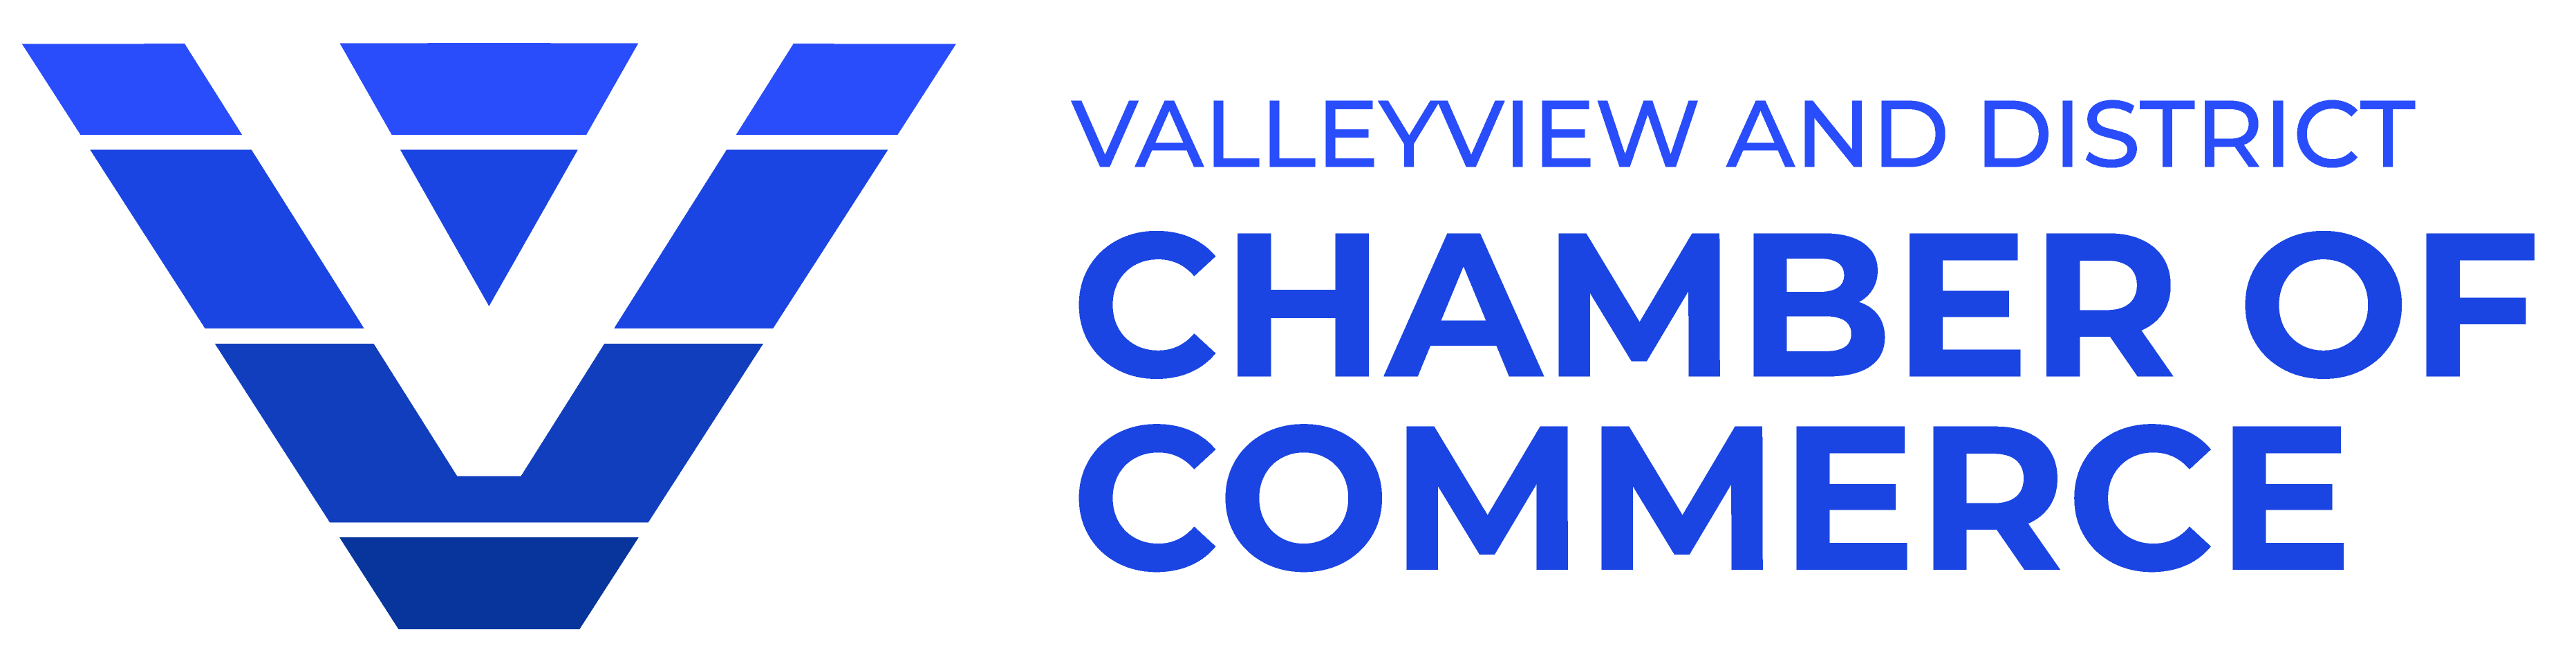 Valleyview and District Chamber of Commerce